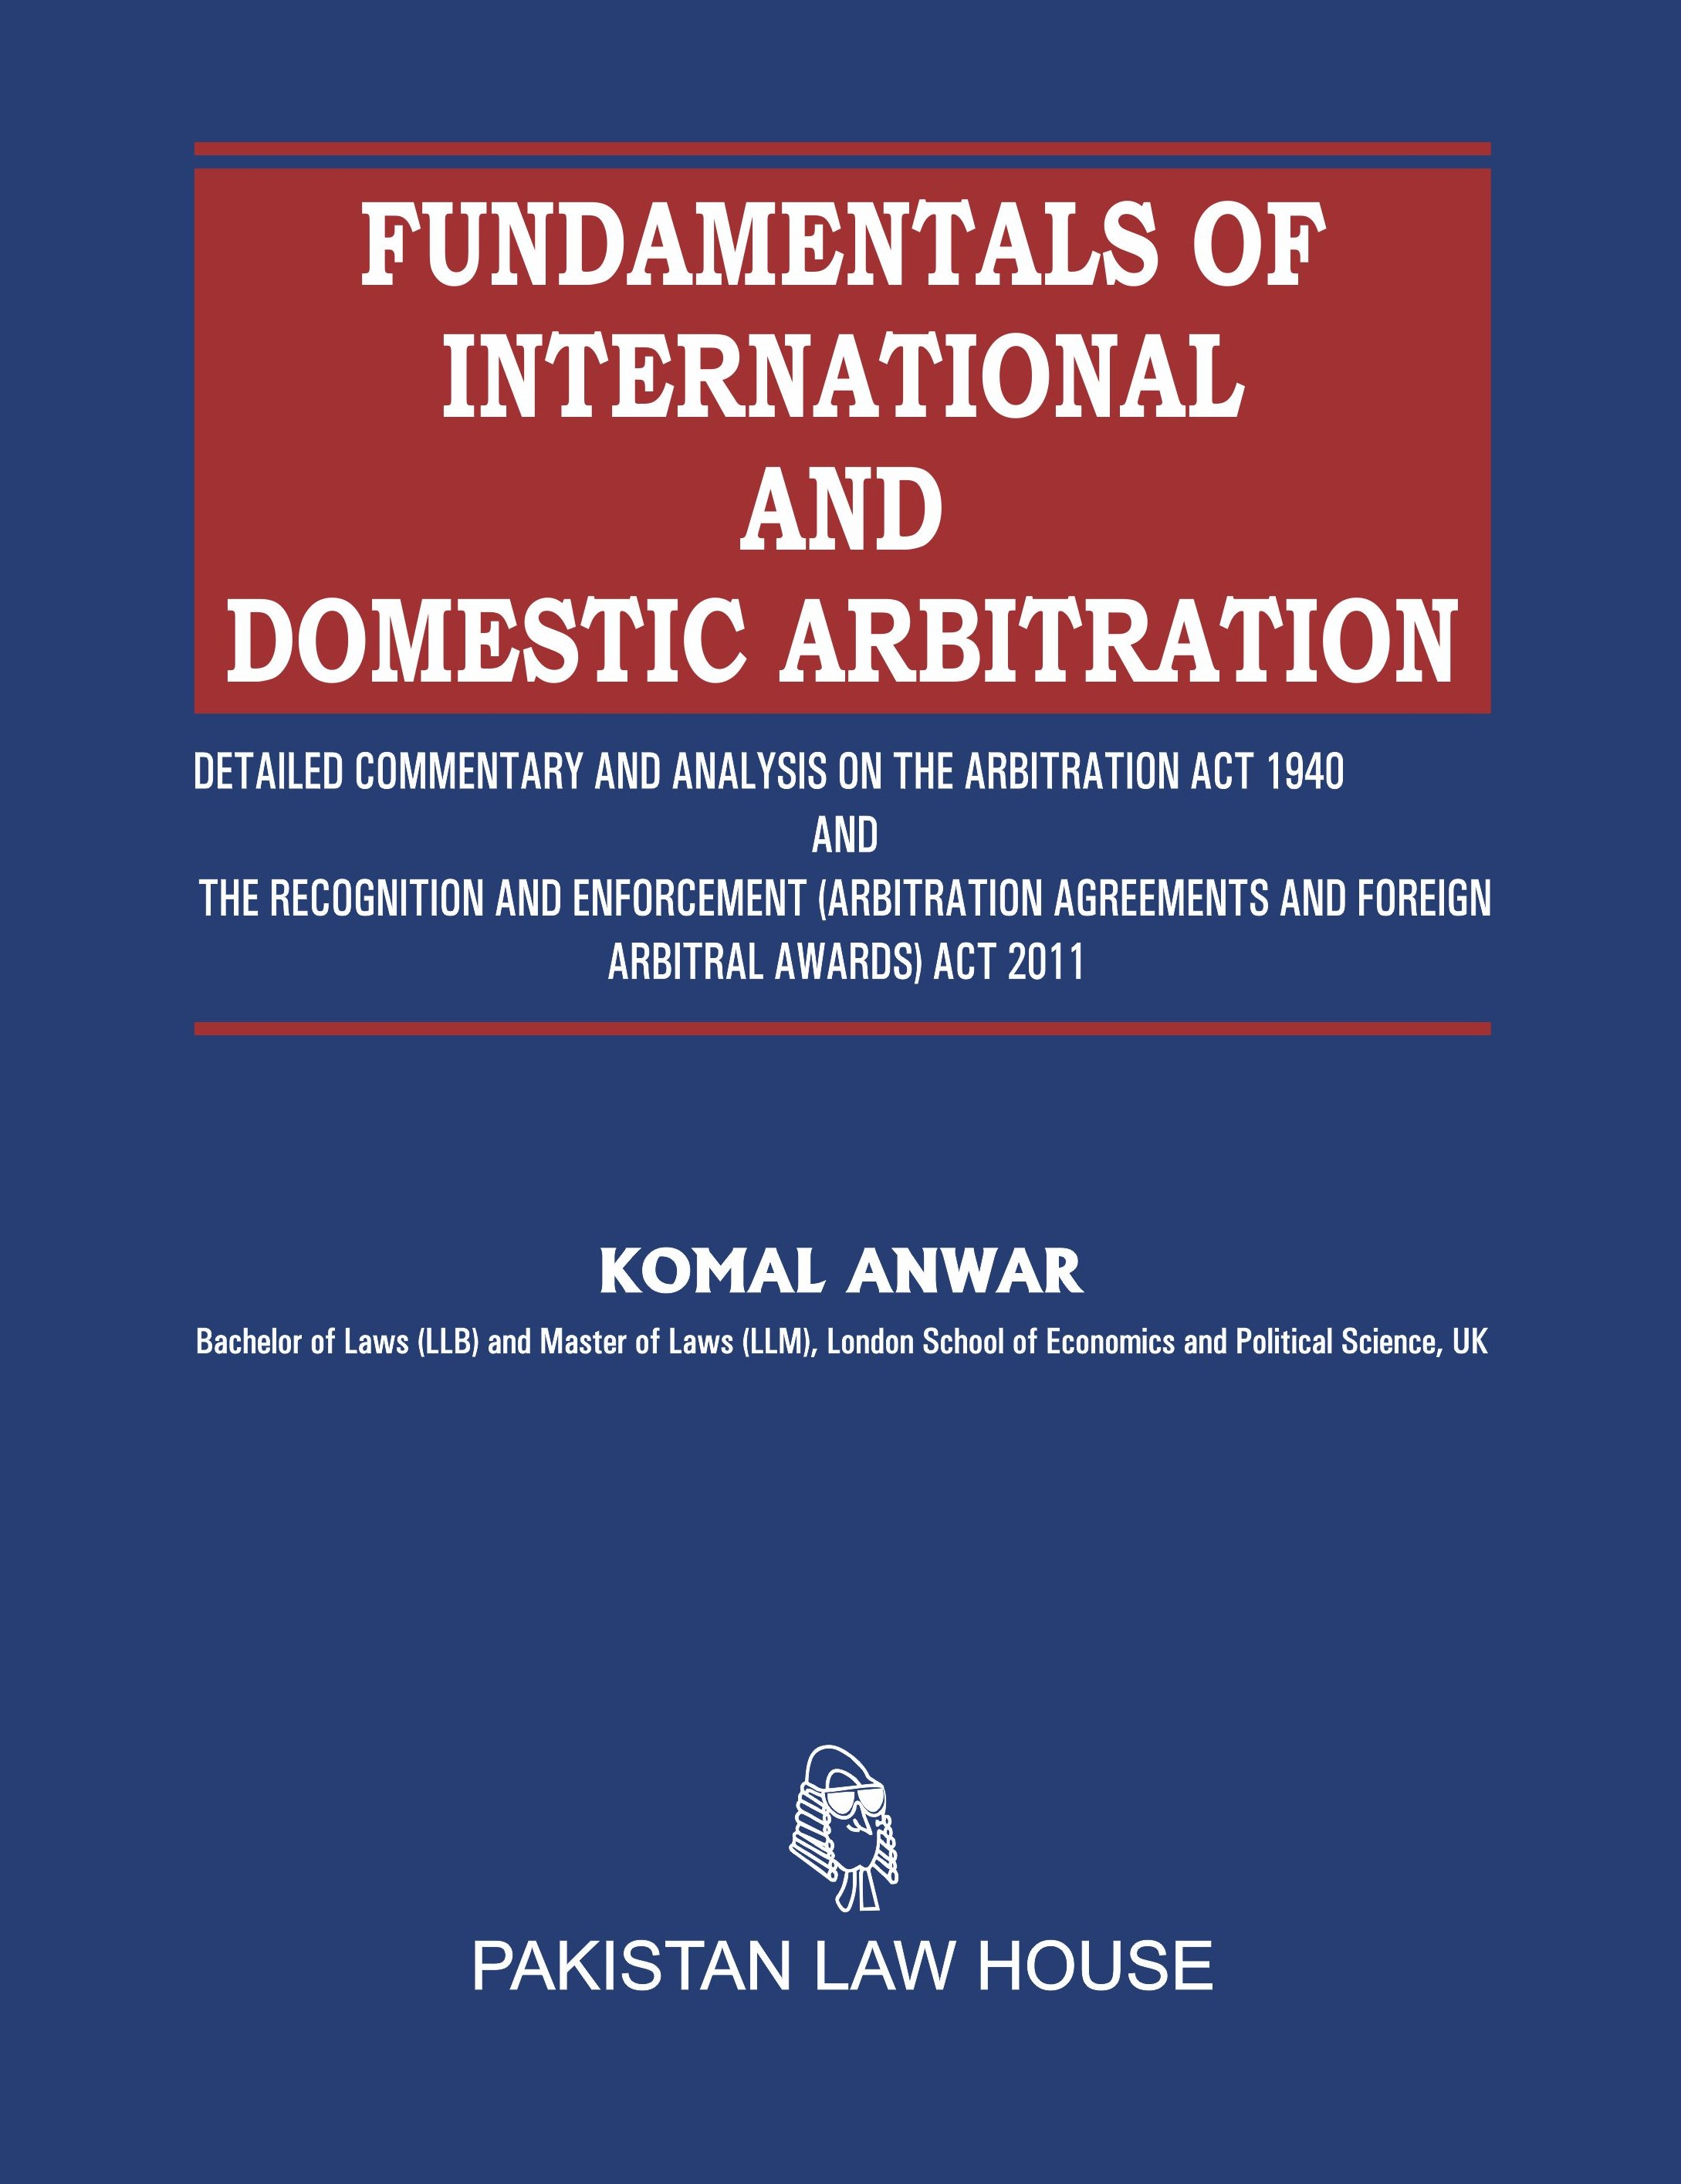 Fundamentals of International and Domestic Arbitration